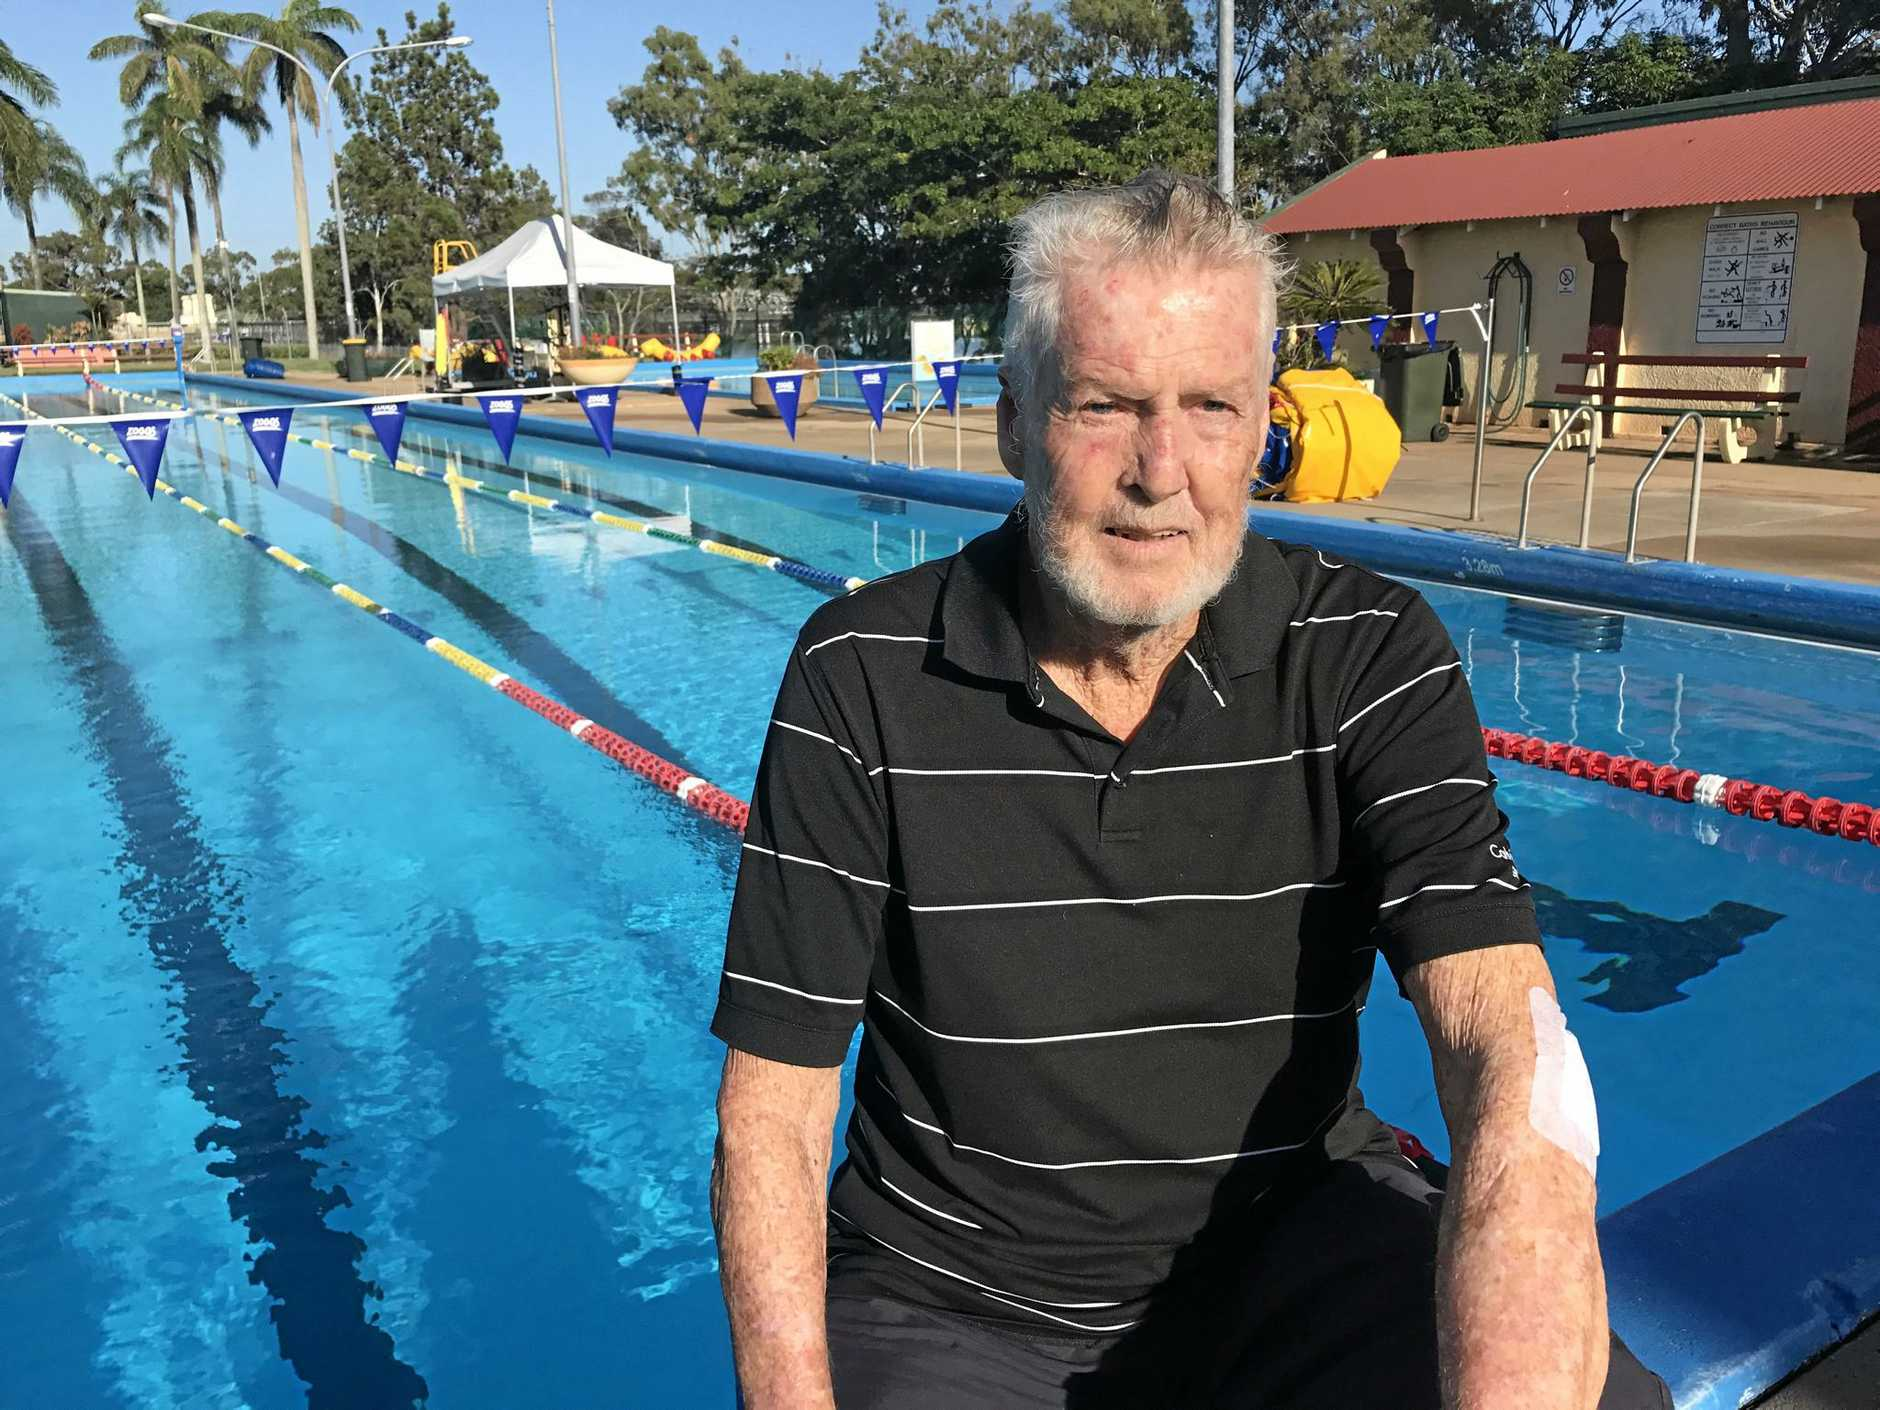 SKIN CANCER: Trevor McIntosh reflects on his days in the sun as a youngster after he was diagnosed with terminal skin cancer 11 months ago. He now wants to share his story and tell others to be sun smart.